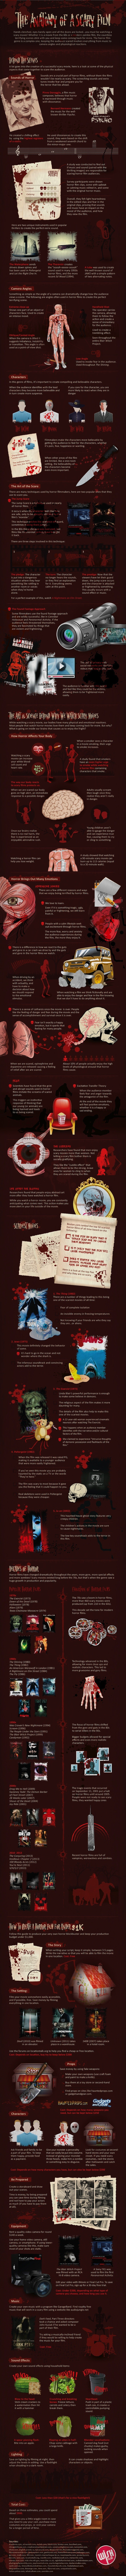 This Infographic Slices Open the Anatomy of a Horror Film